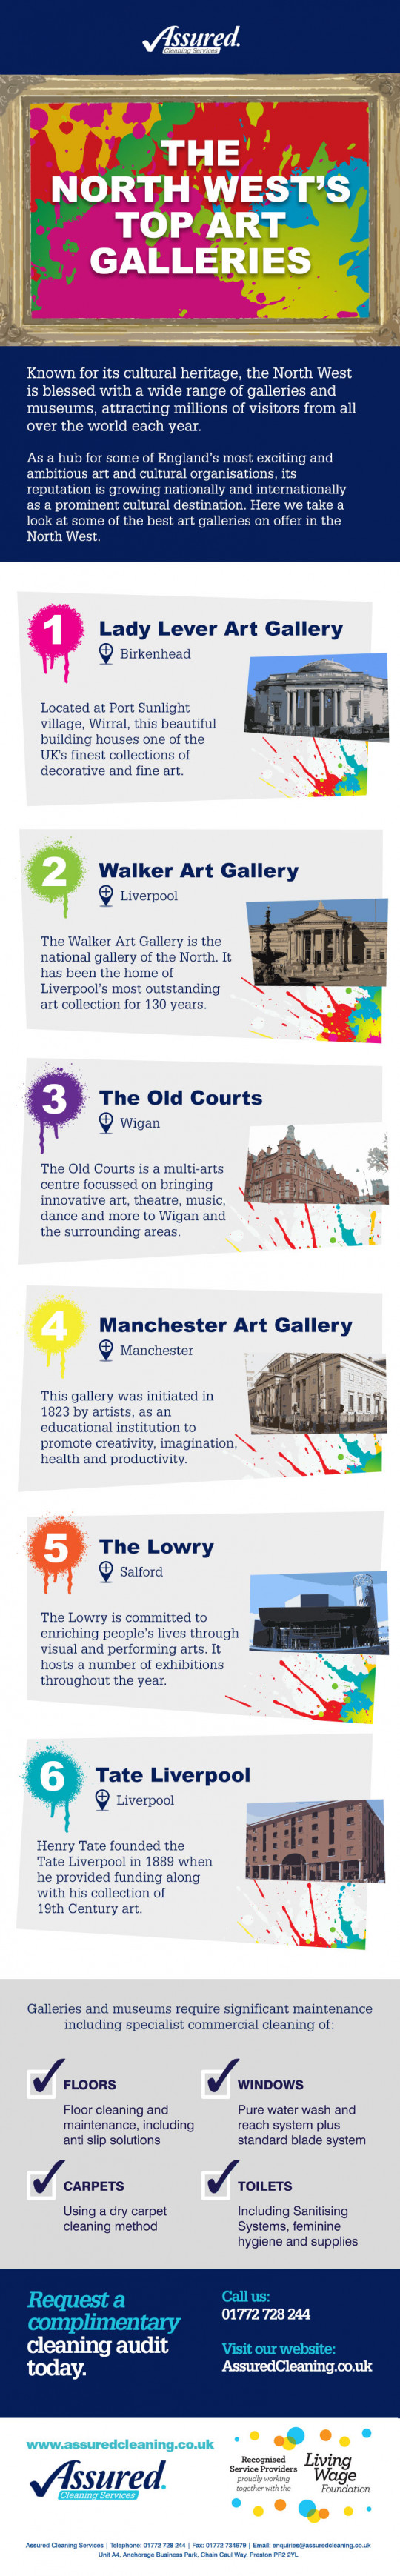 The North West's Top Art Galleries